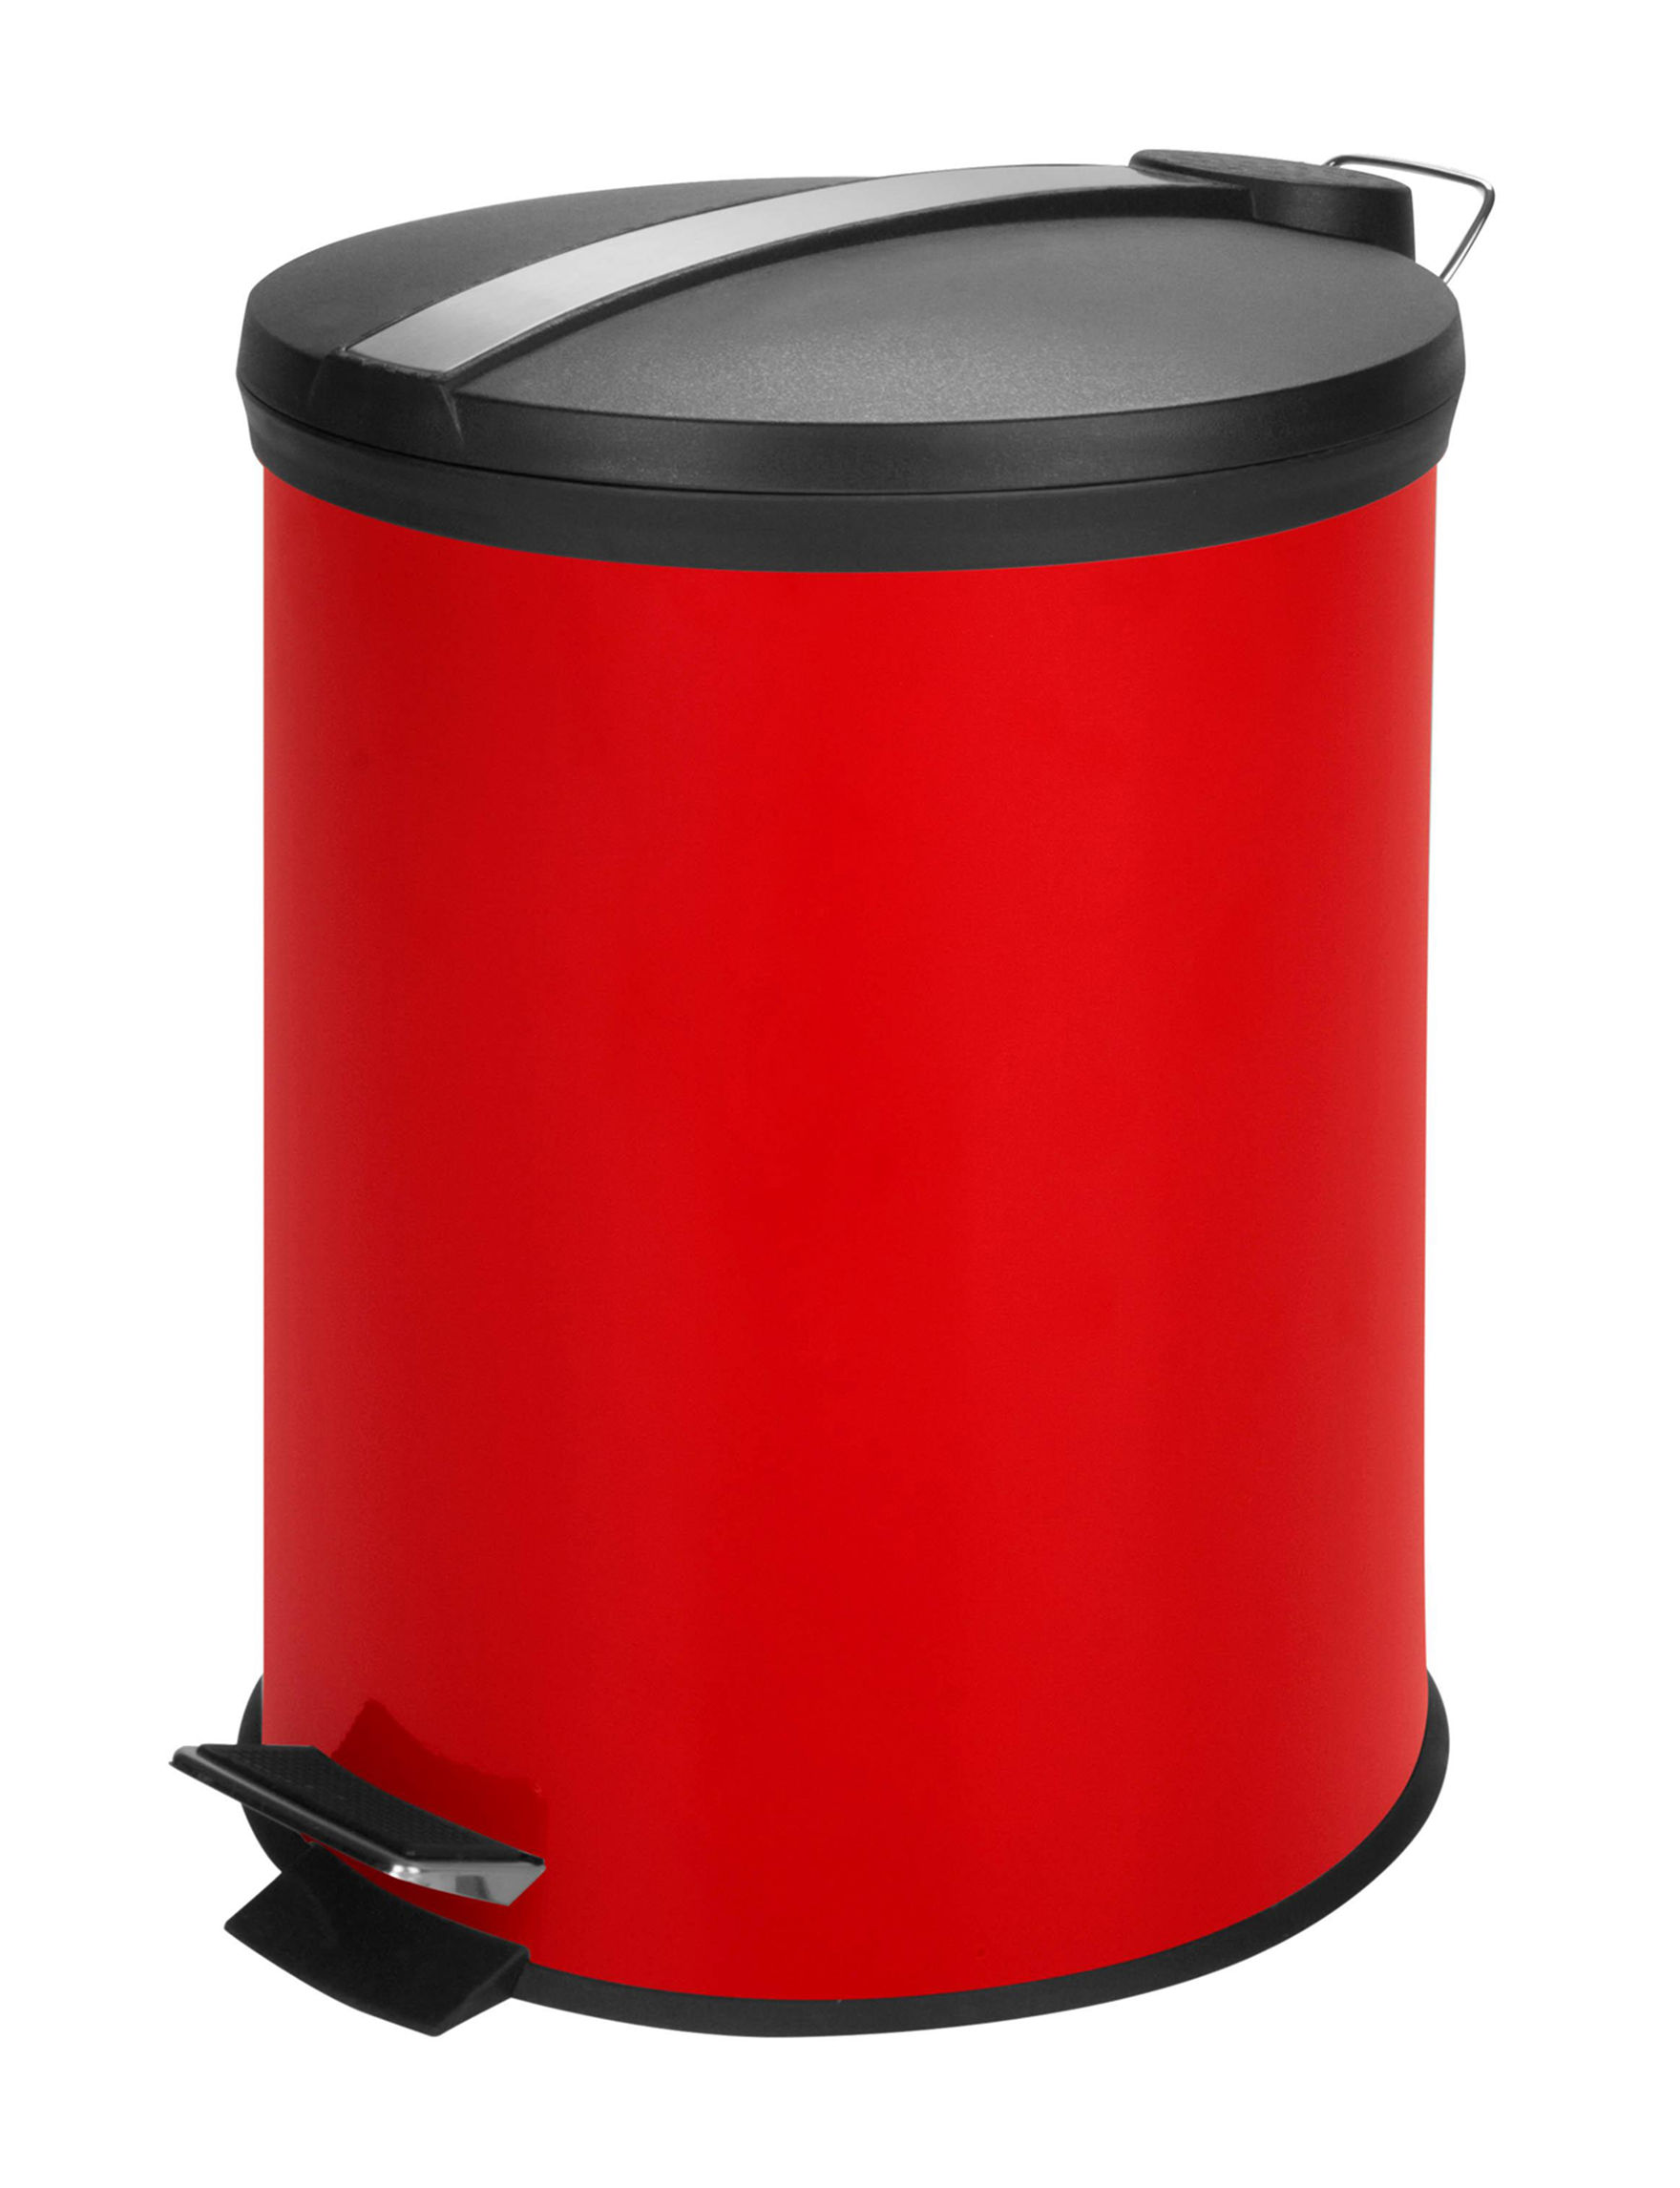 Honey-Can-Do International Red Trash & Recycling Bins Storage & Organization